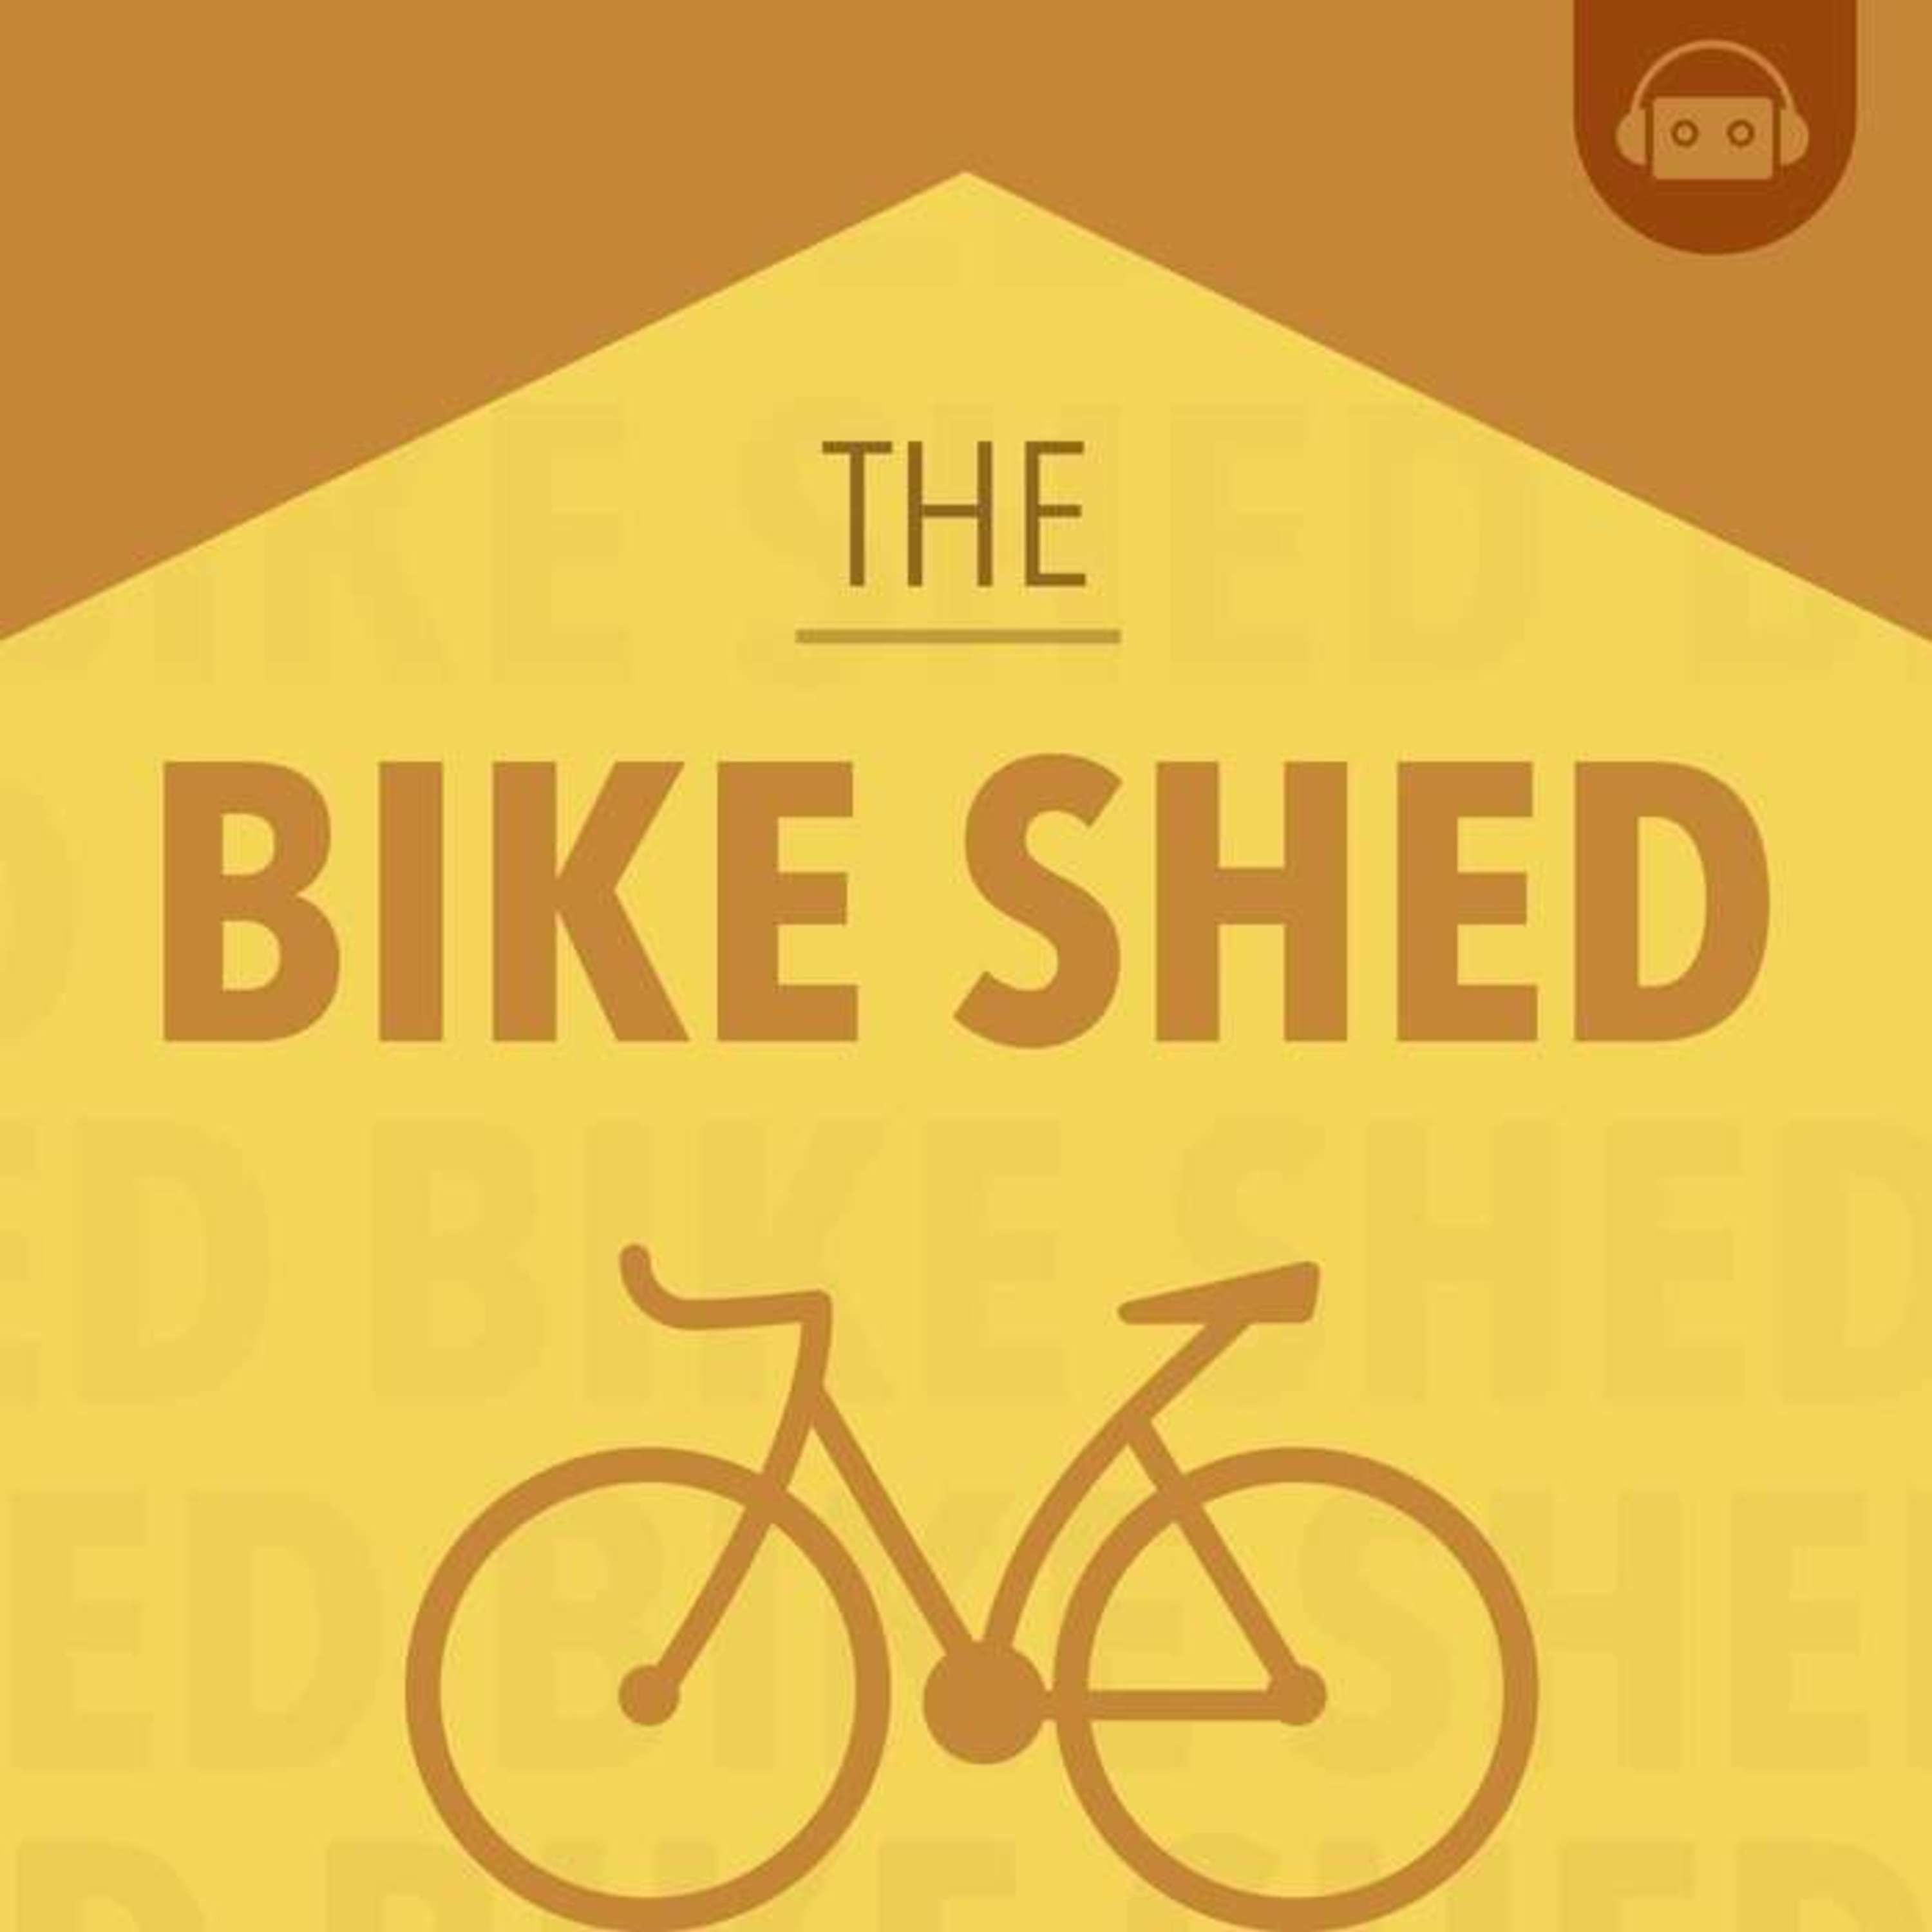 152: I Look For Stories (Nickolas Means) | The Bike Shed